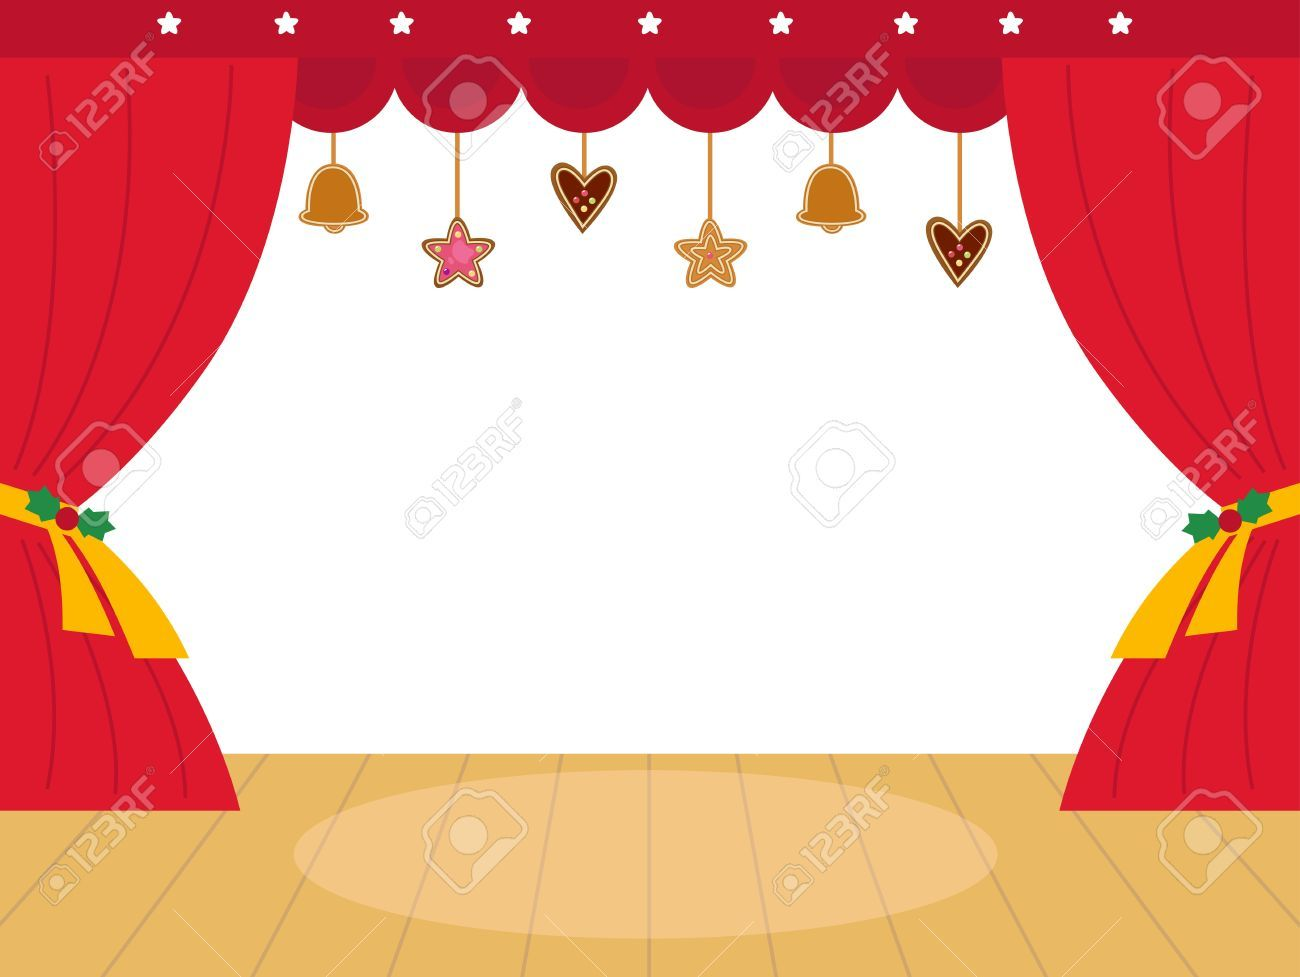 christmas theatre stage clipart.